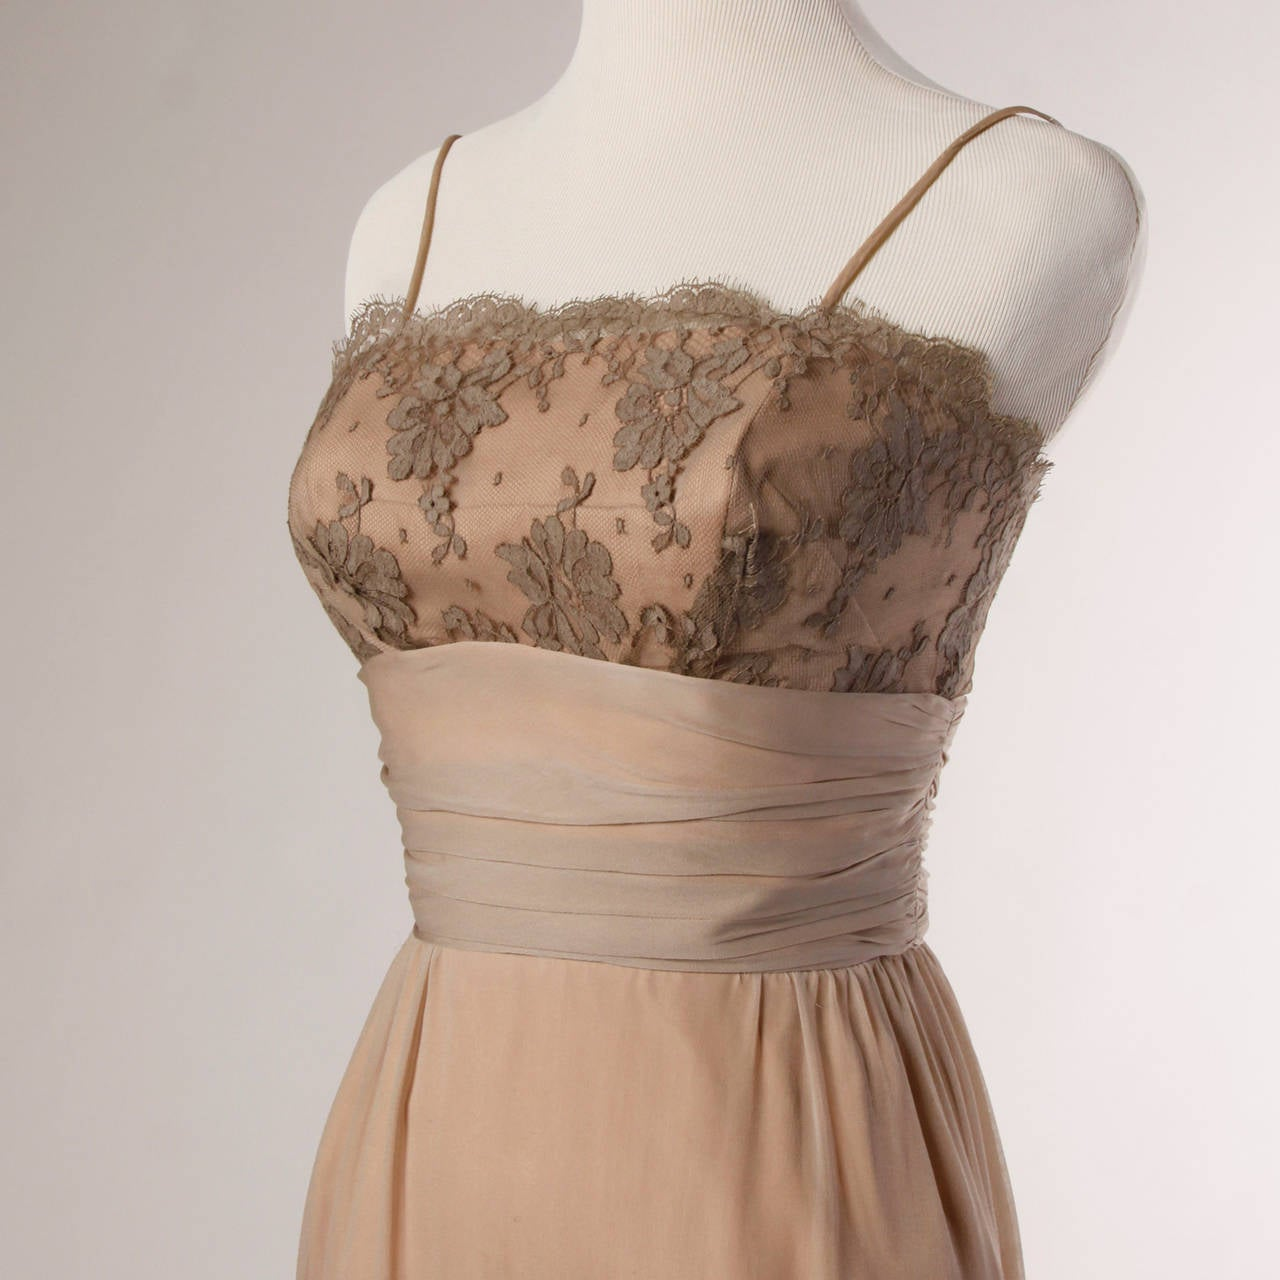 Edith Flagg Vintage 1960s Nude Illusion Silk + Lace Cocktail Dress 2